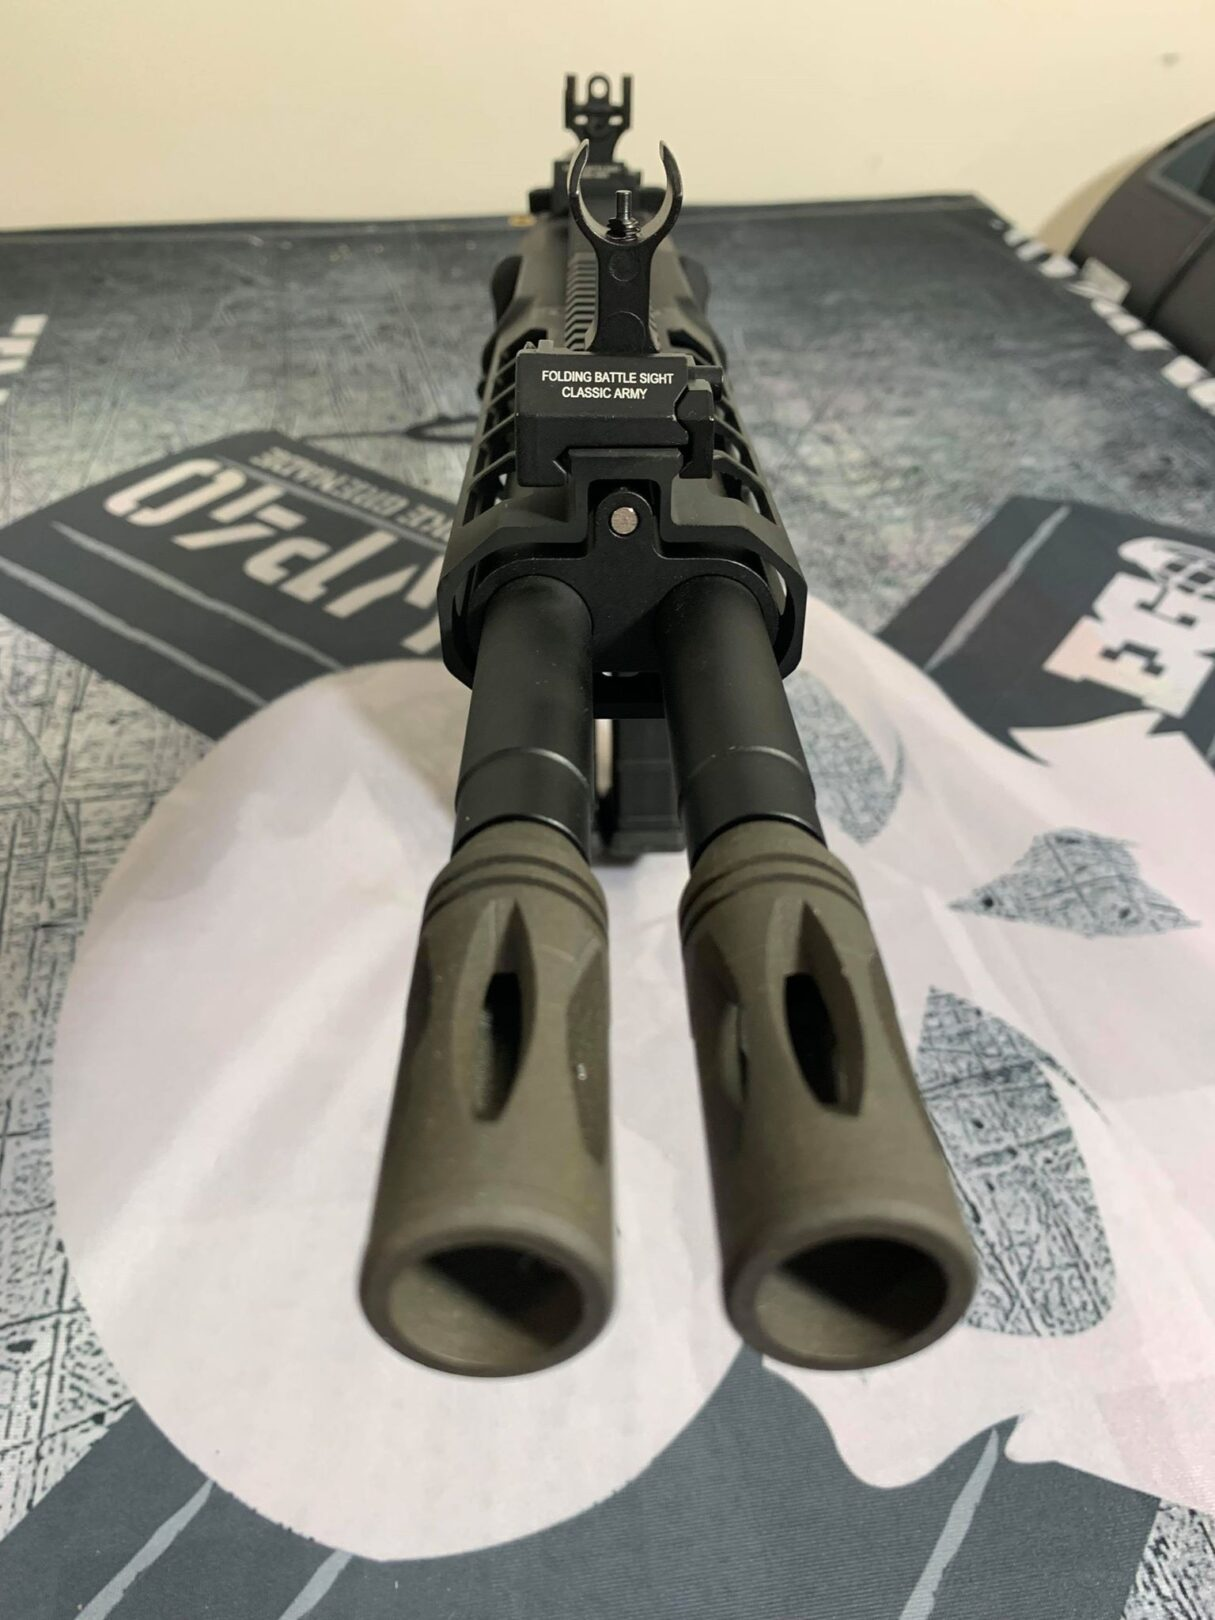 Image result for Classic Army Nemesis DT-4 Double Barrel M4